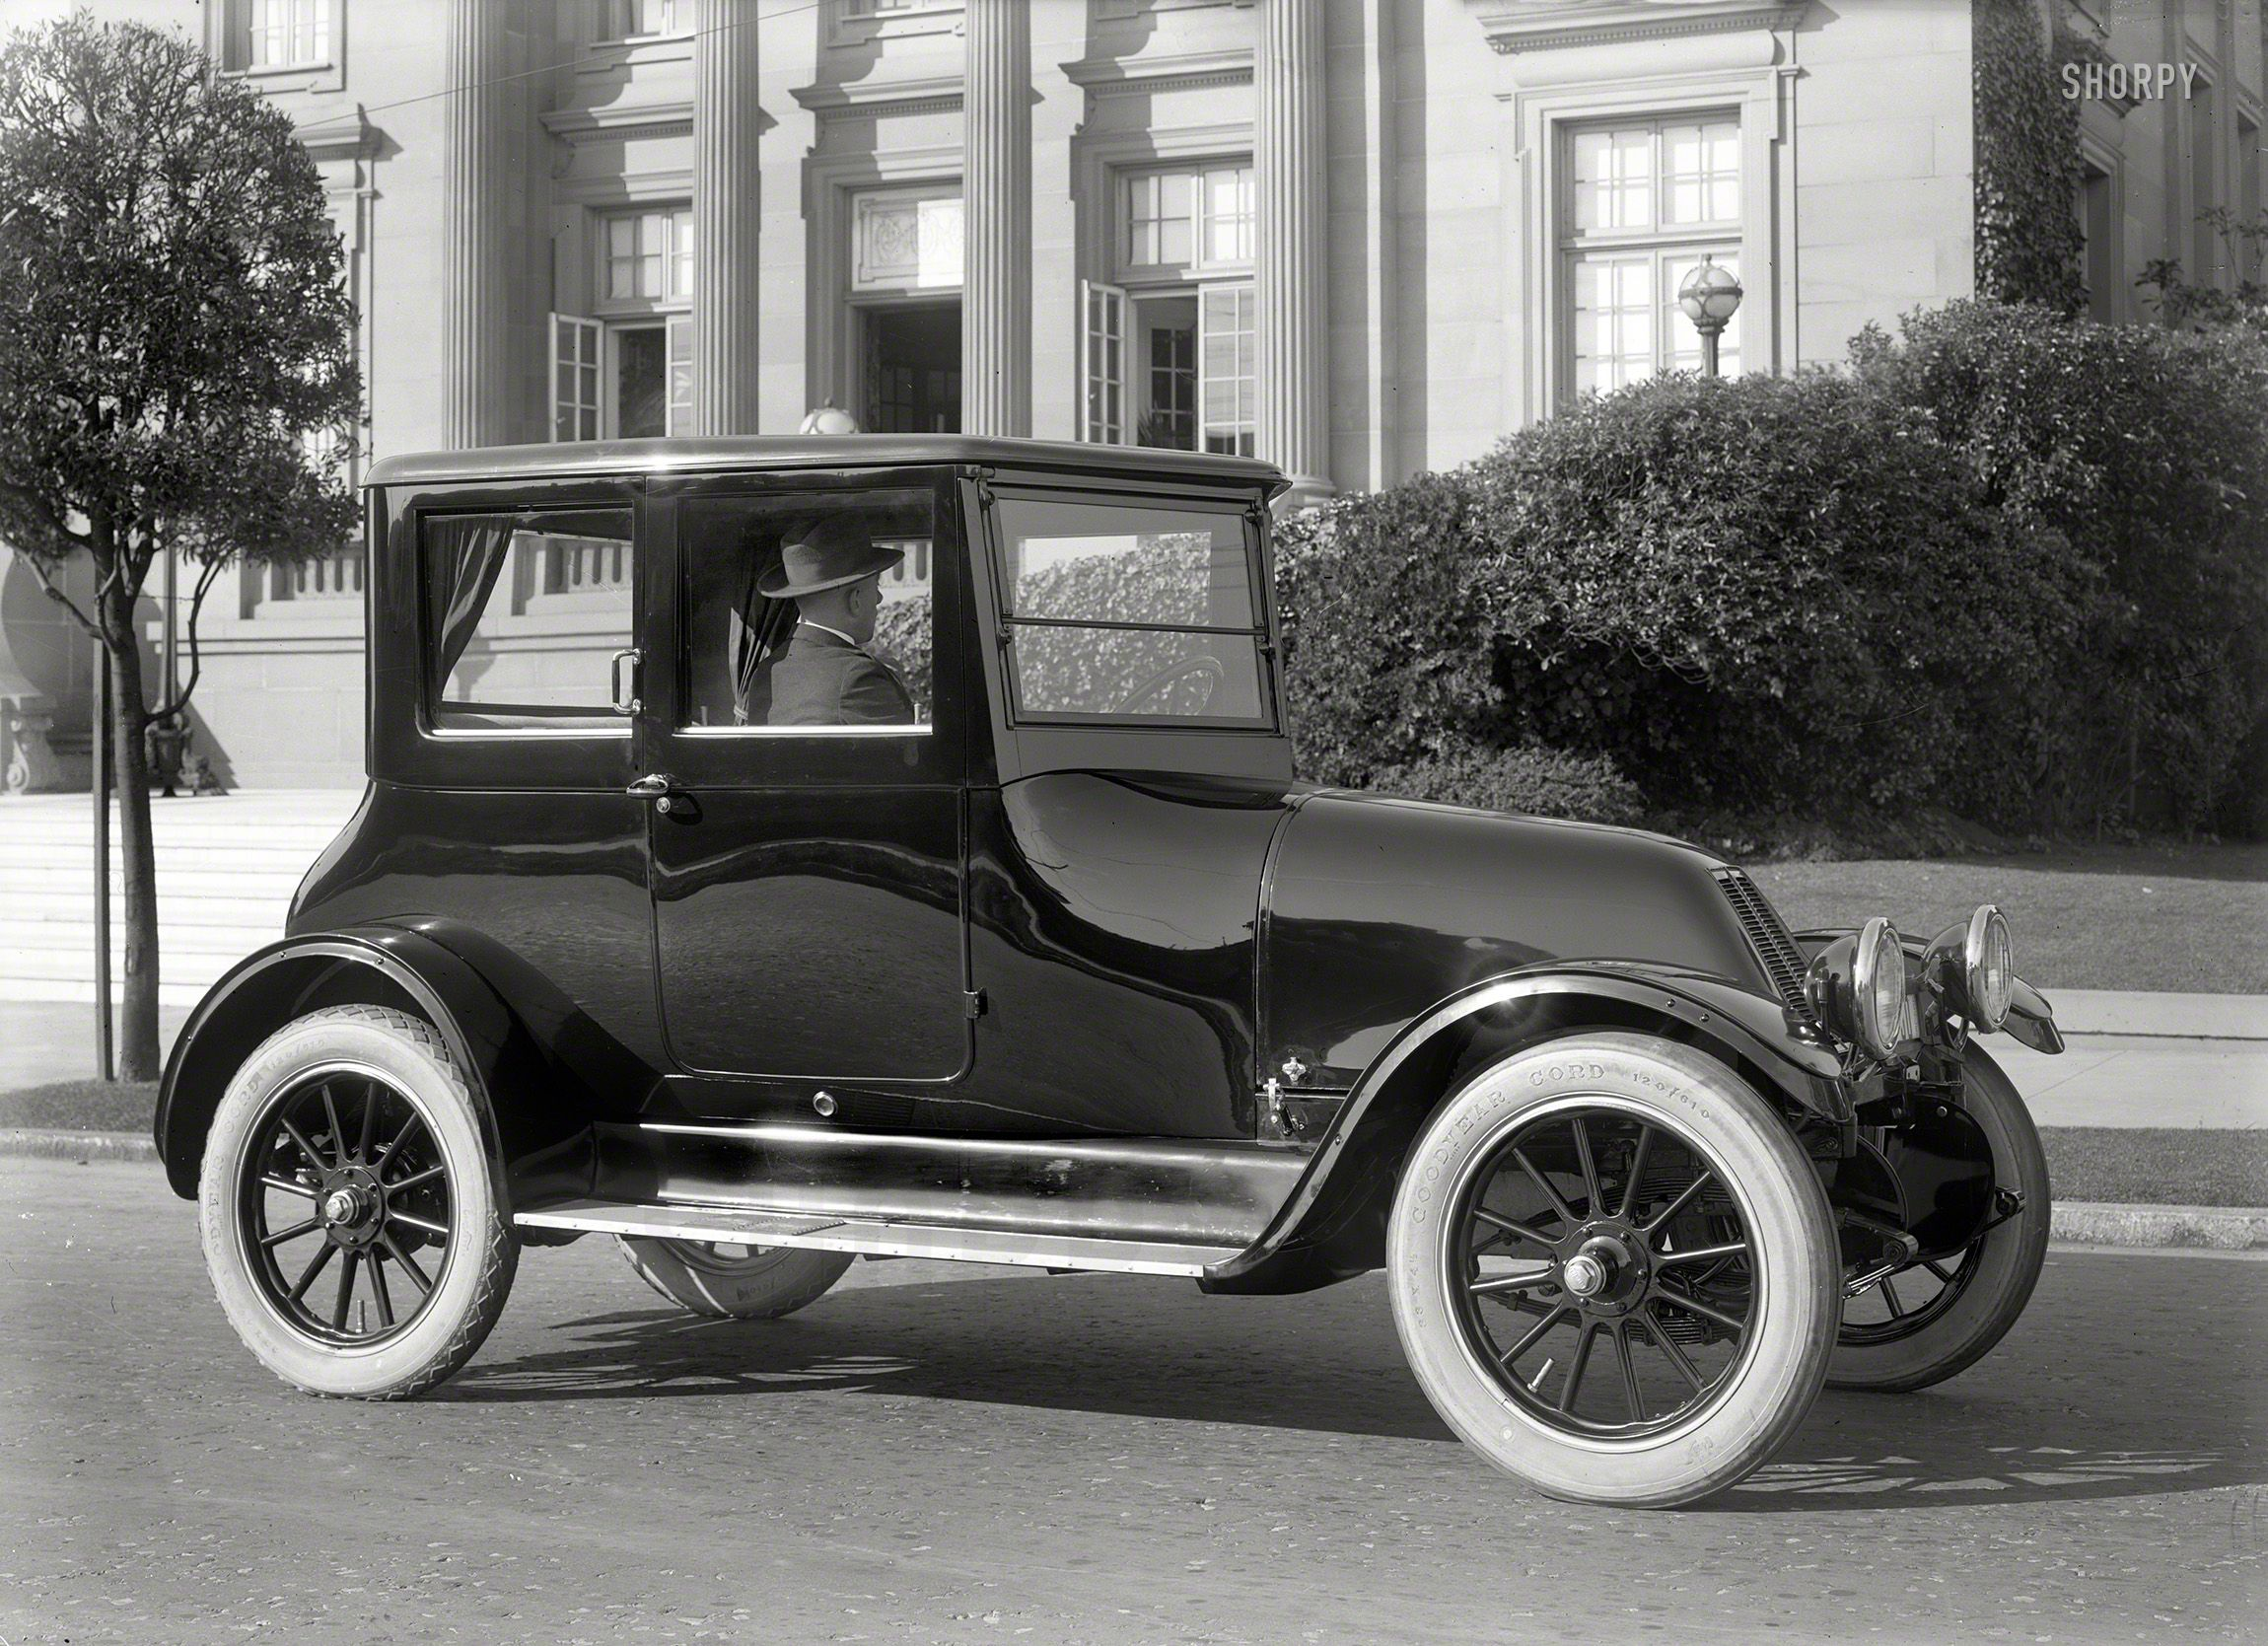 117 best Old Cars images on Pinterest | Old school cars, Antique ...